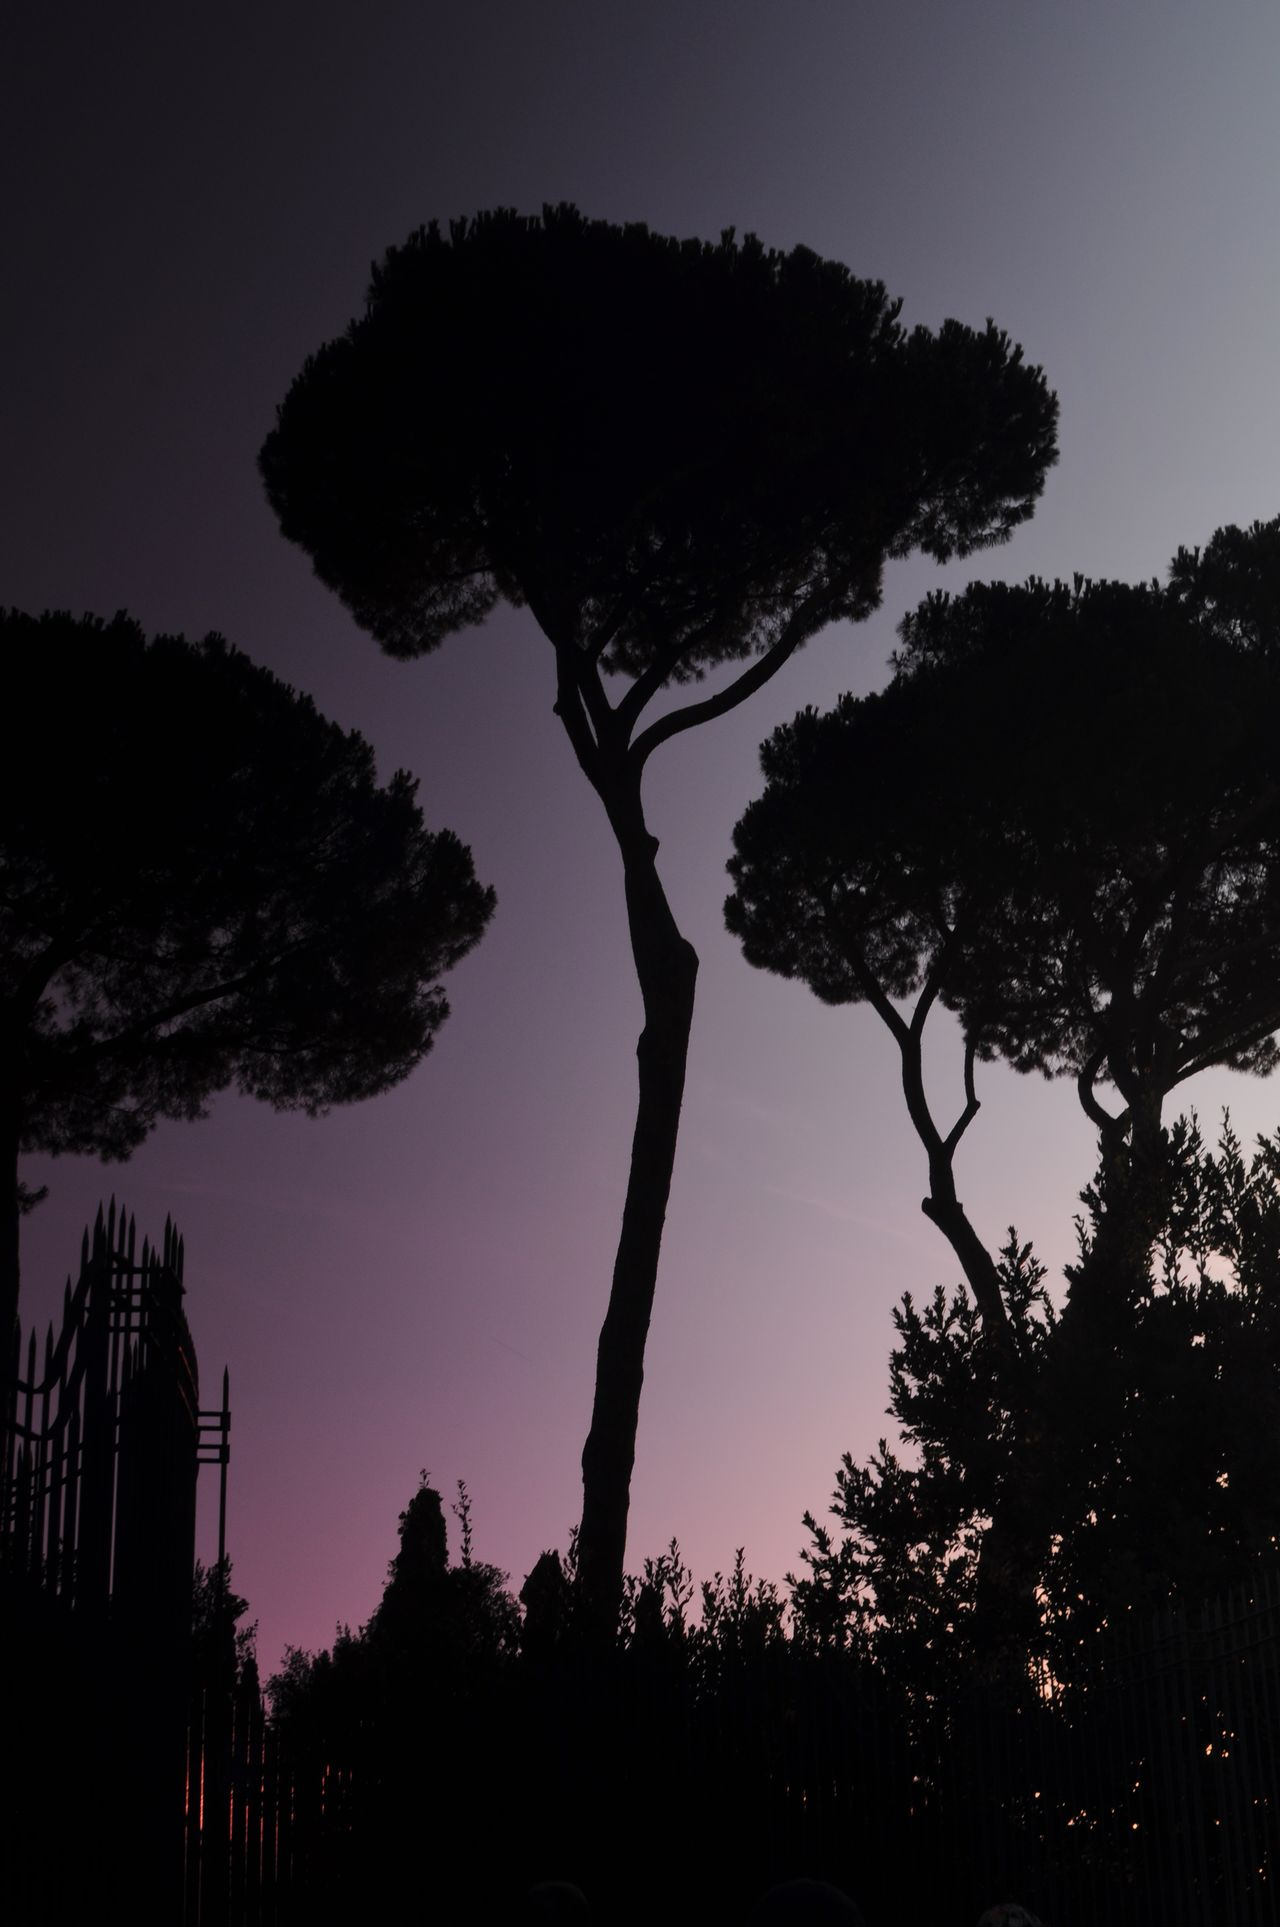 bäume am abend Bäume Evening light Growth Italia Silhouette Tree TreePorn Trees beauty in Nature Clear sky evening sky Growth italy Low angle view Nature night no people outdoors scenics Silhouette tranquil scene Tranquility Tree tree_collection trees and sky